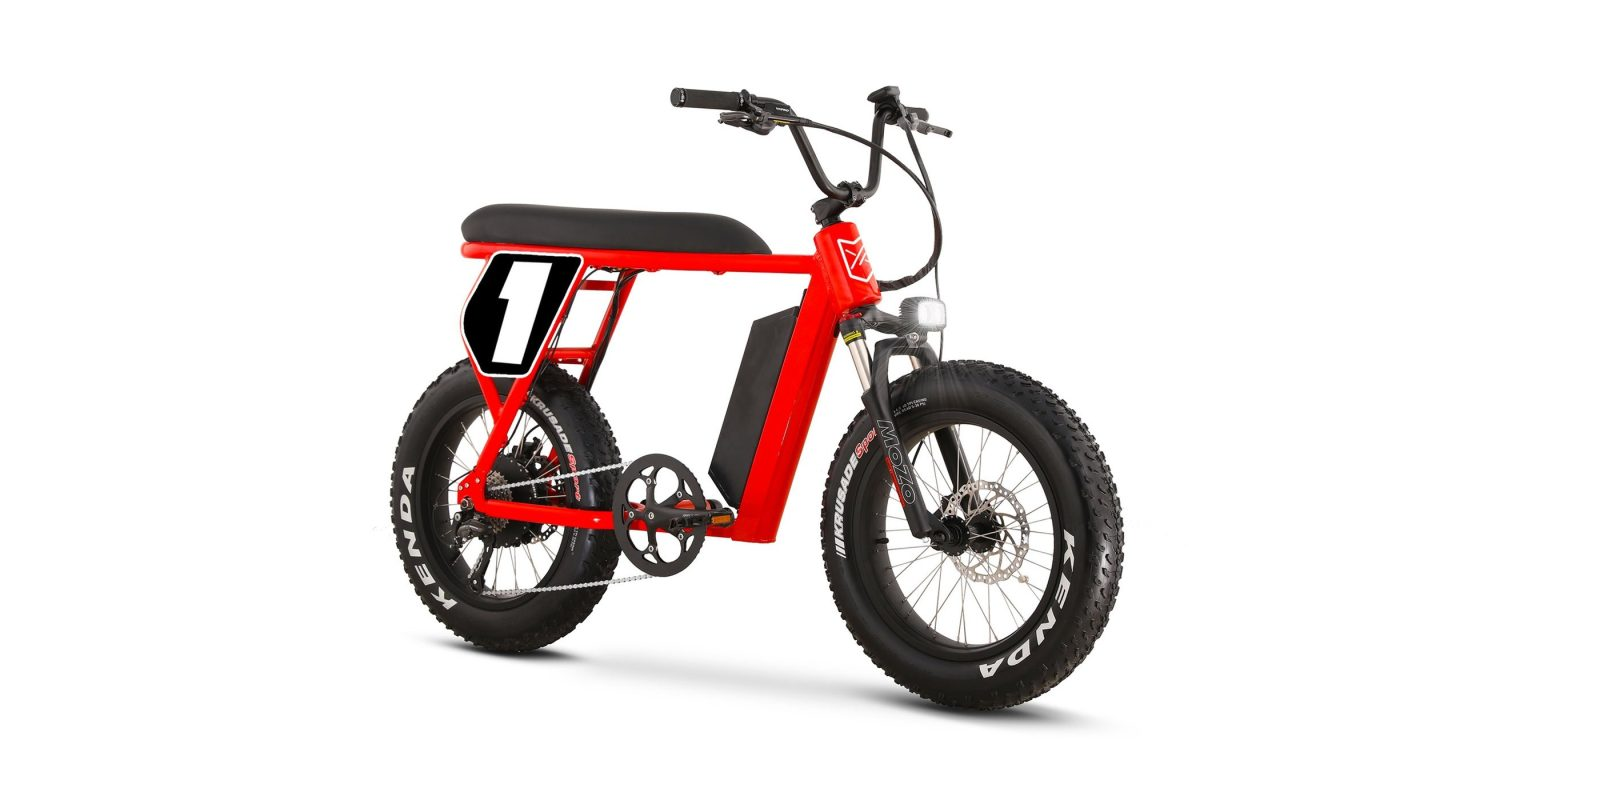 Juiced Bikes New Retro Electric Bicycle Goes Faster And Her For Less Money